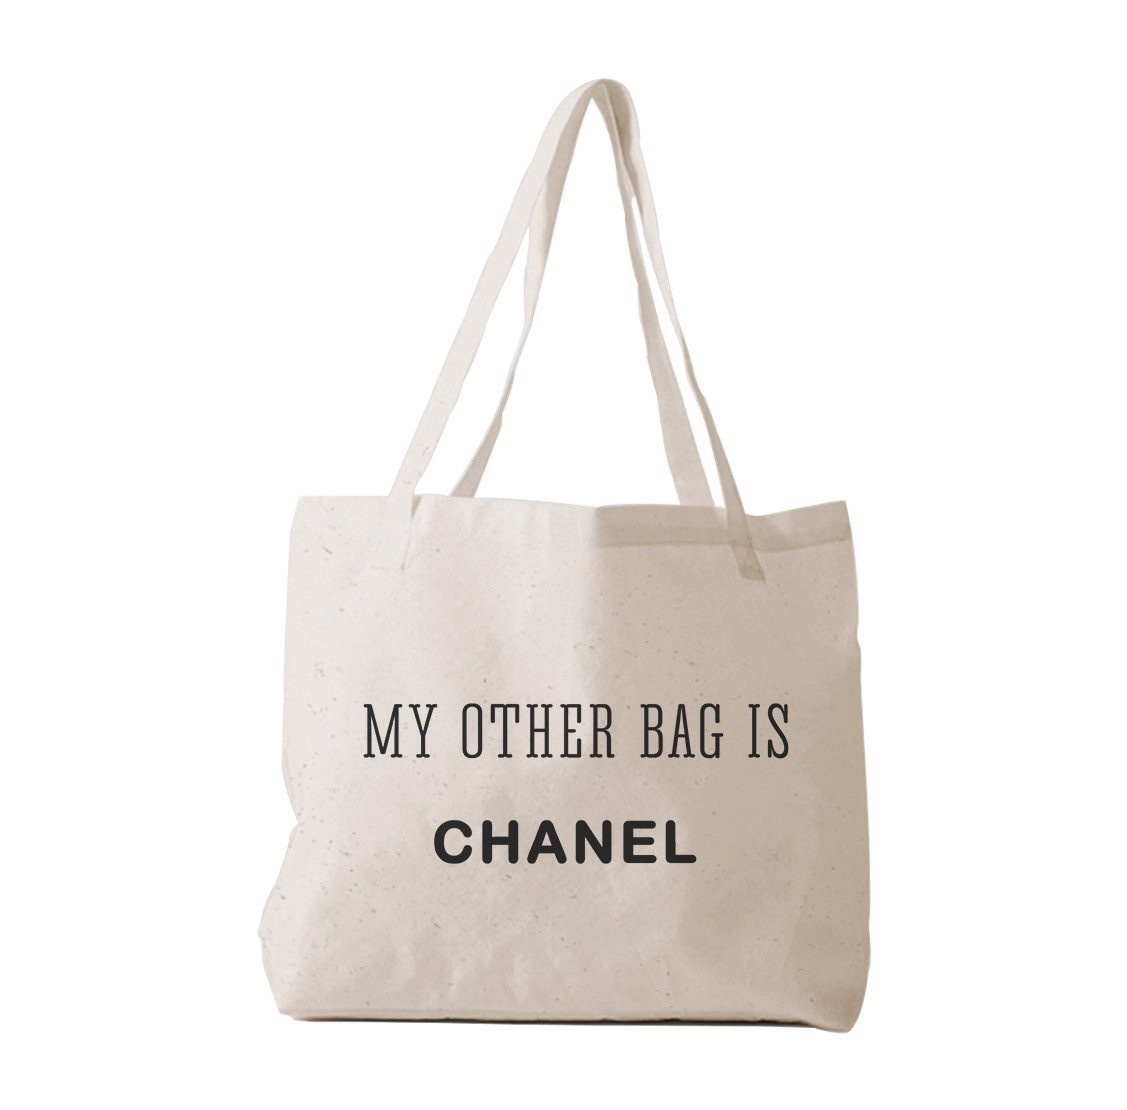 Tote Bag - Chanel quote